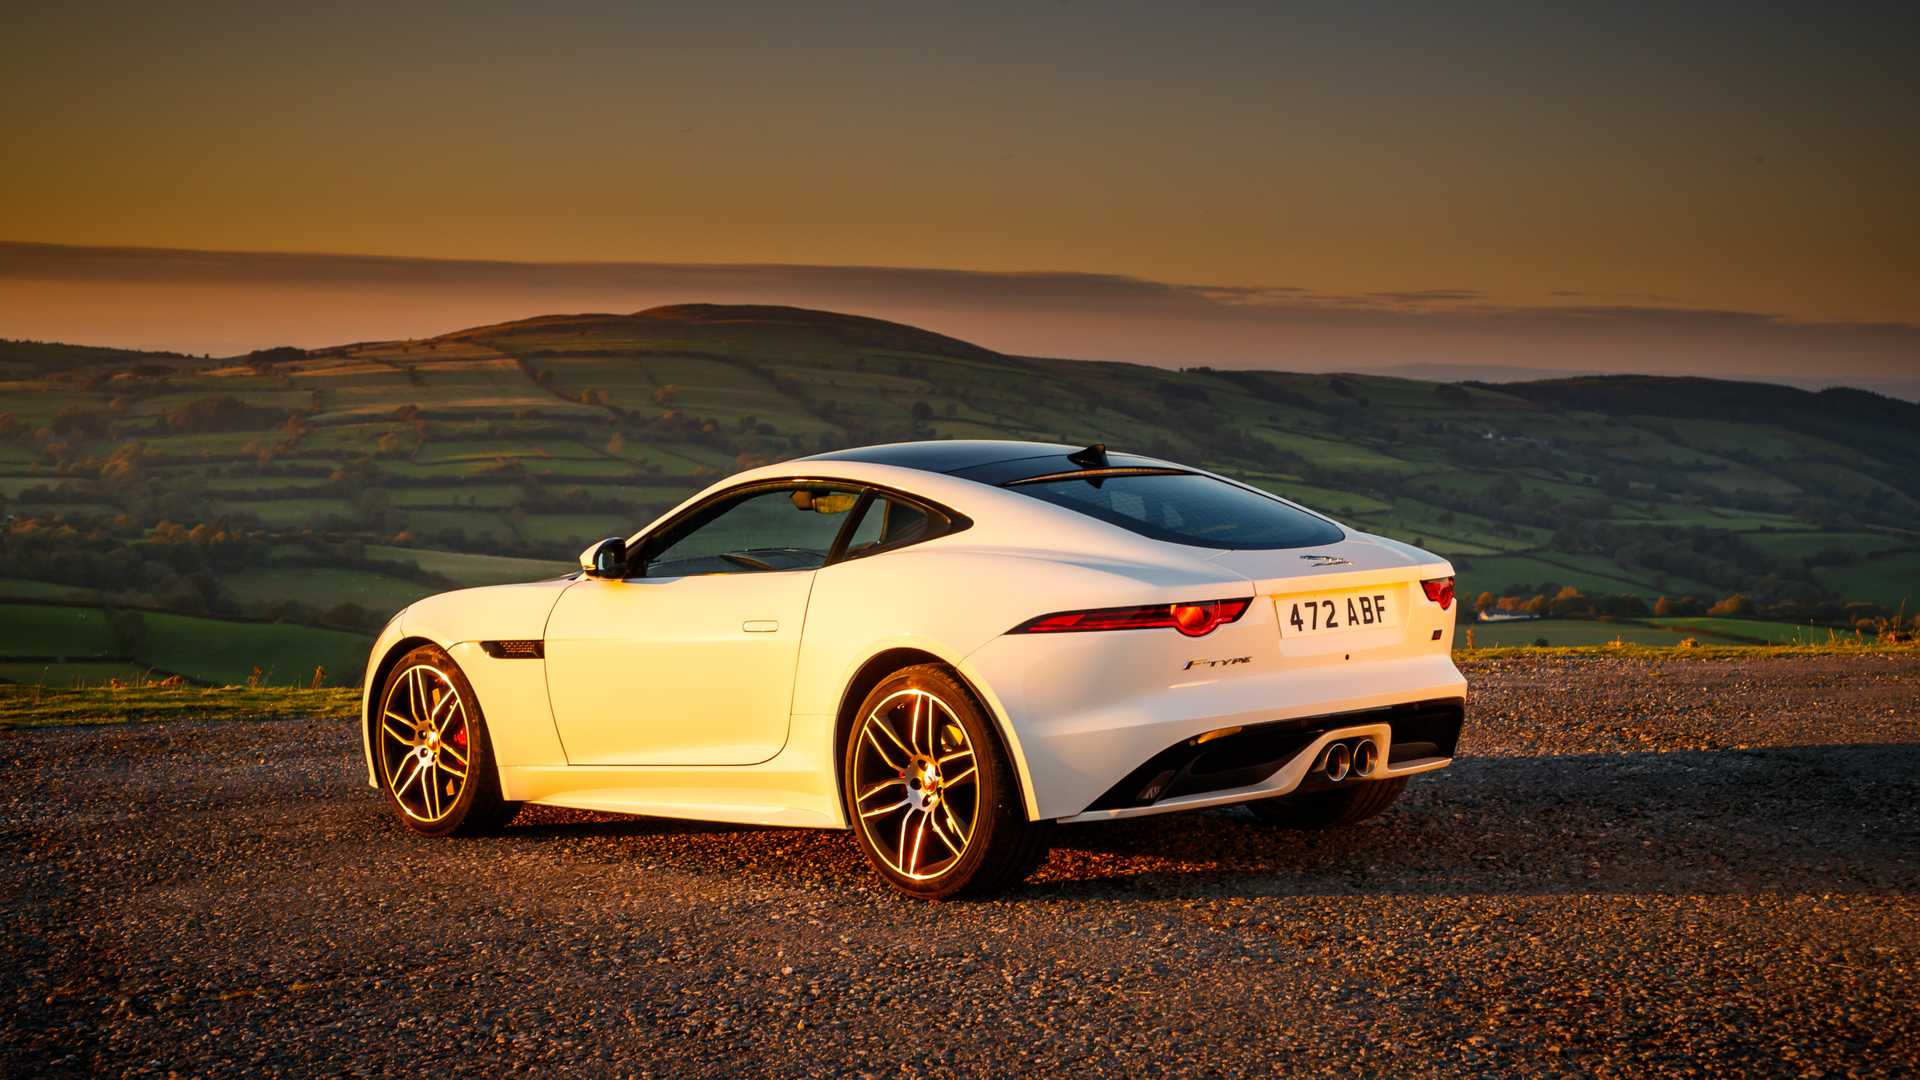 2020-jaguar-f-type-checkered-flag-edition (1)